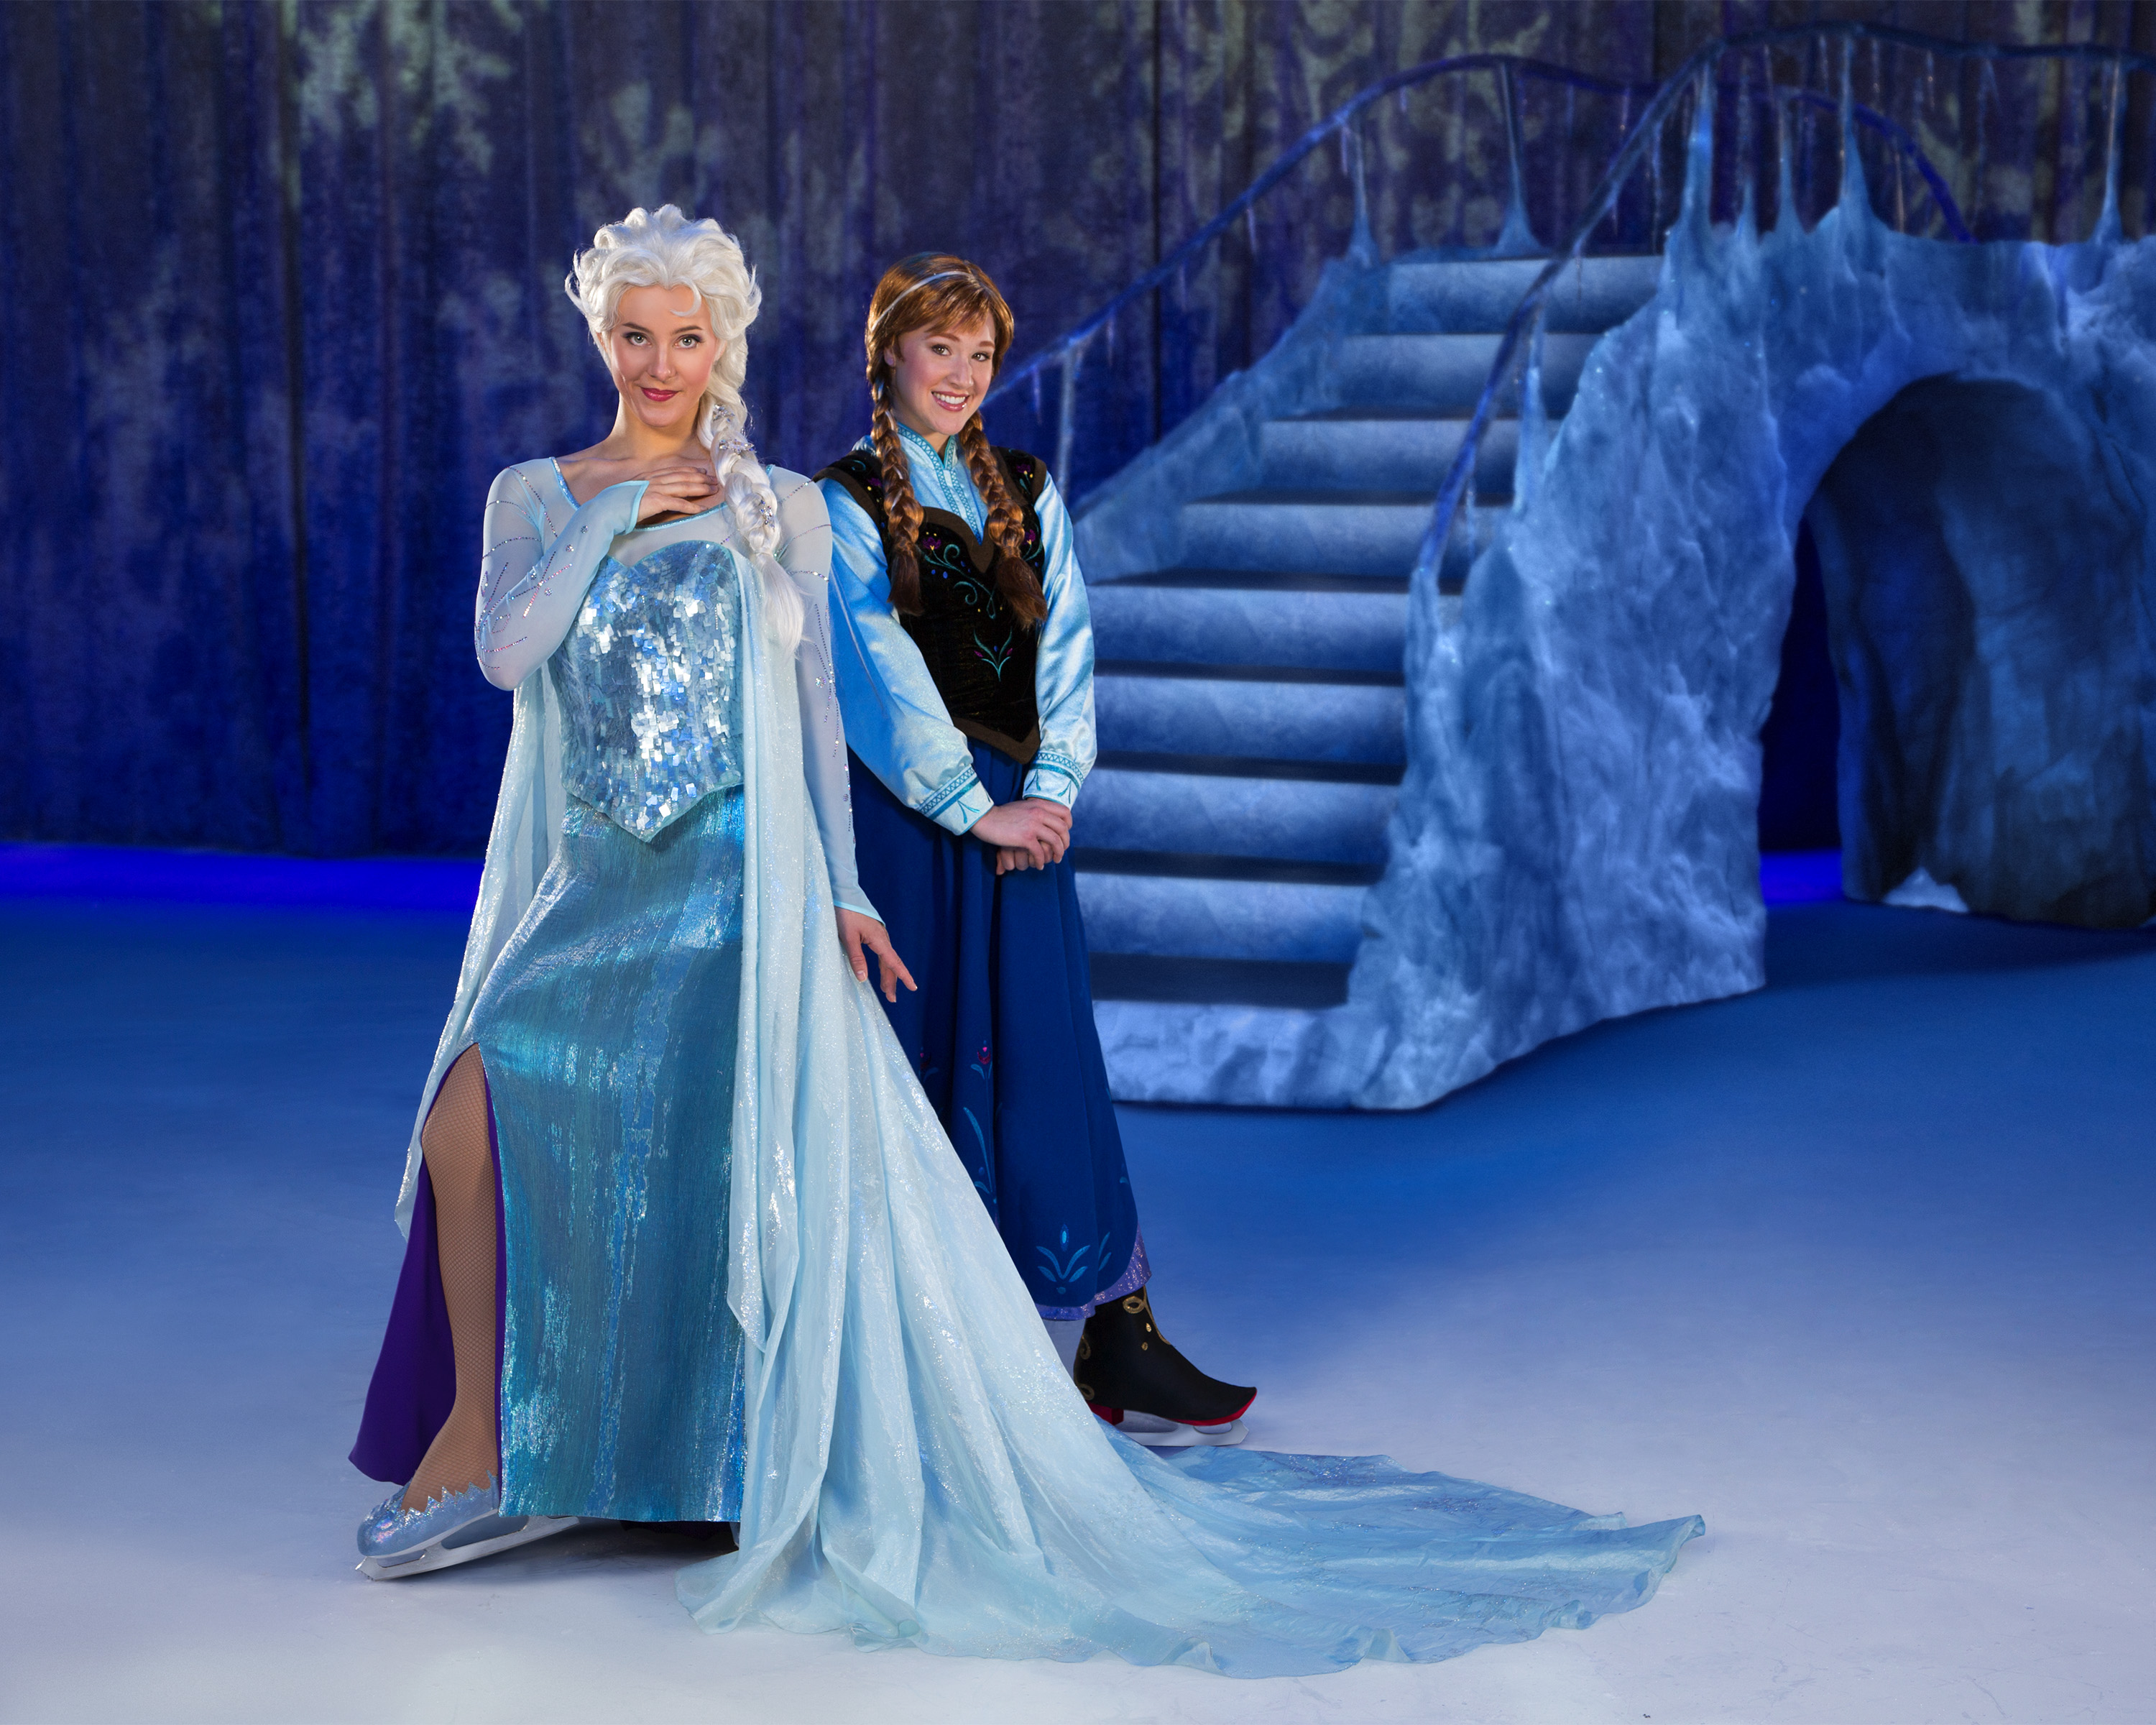 D23 Disney on Ice Presents Frozen